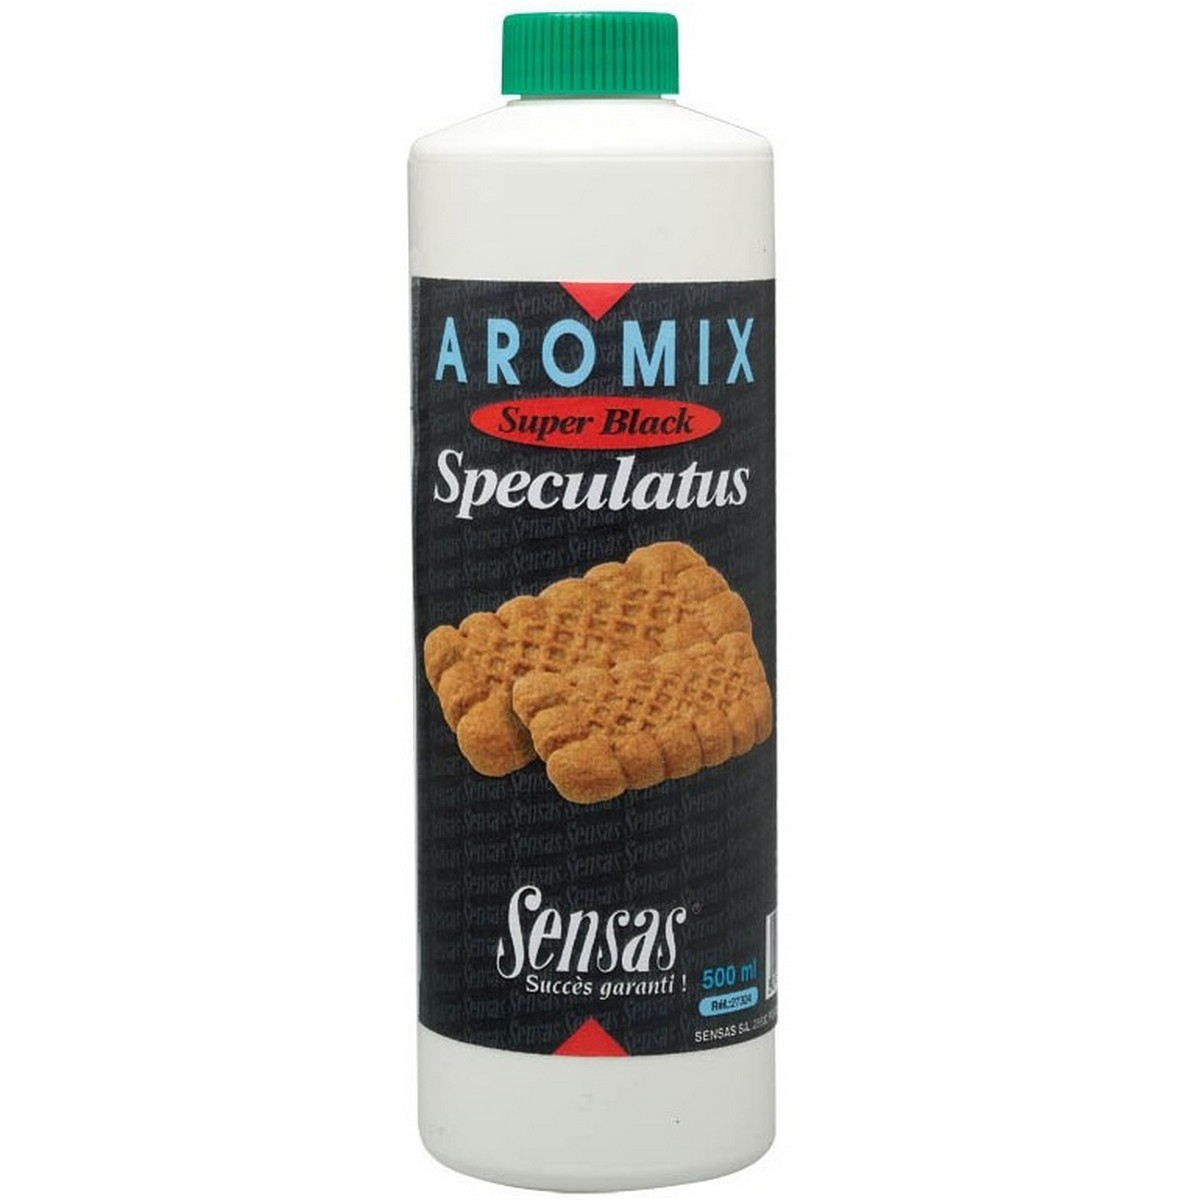 Течен ароматизатор Sensas Aromix - Speculatos Super Black